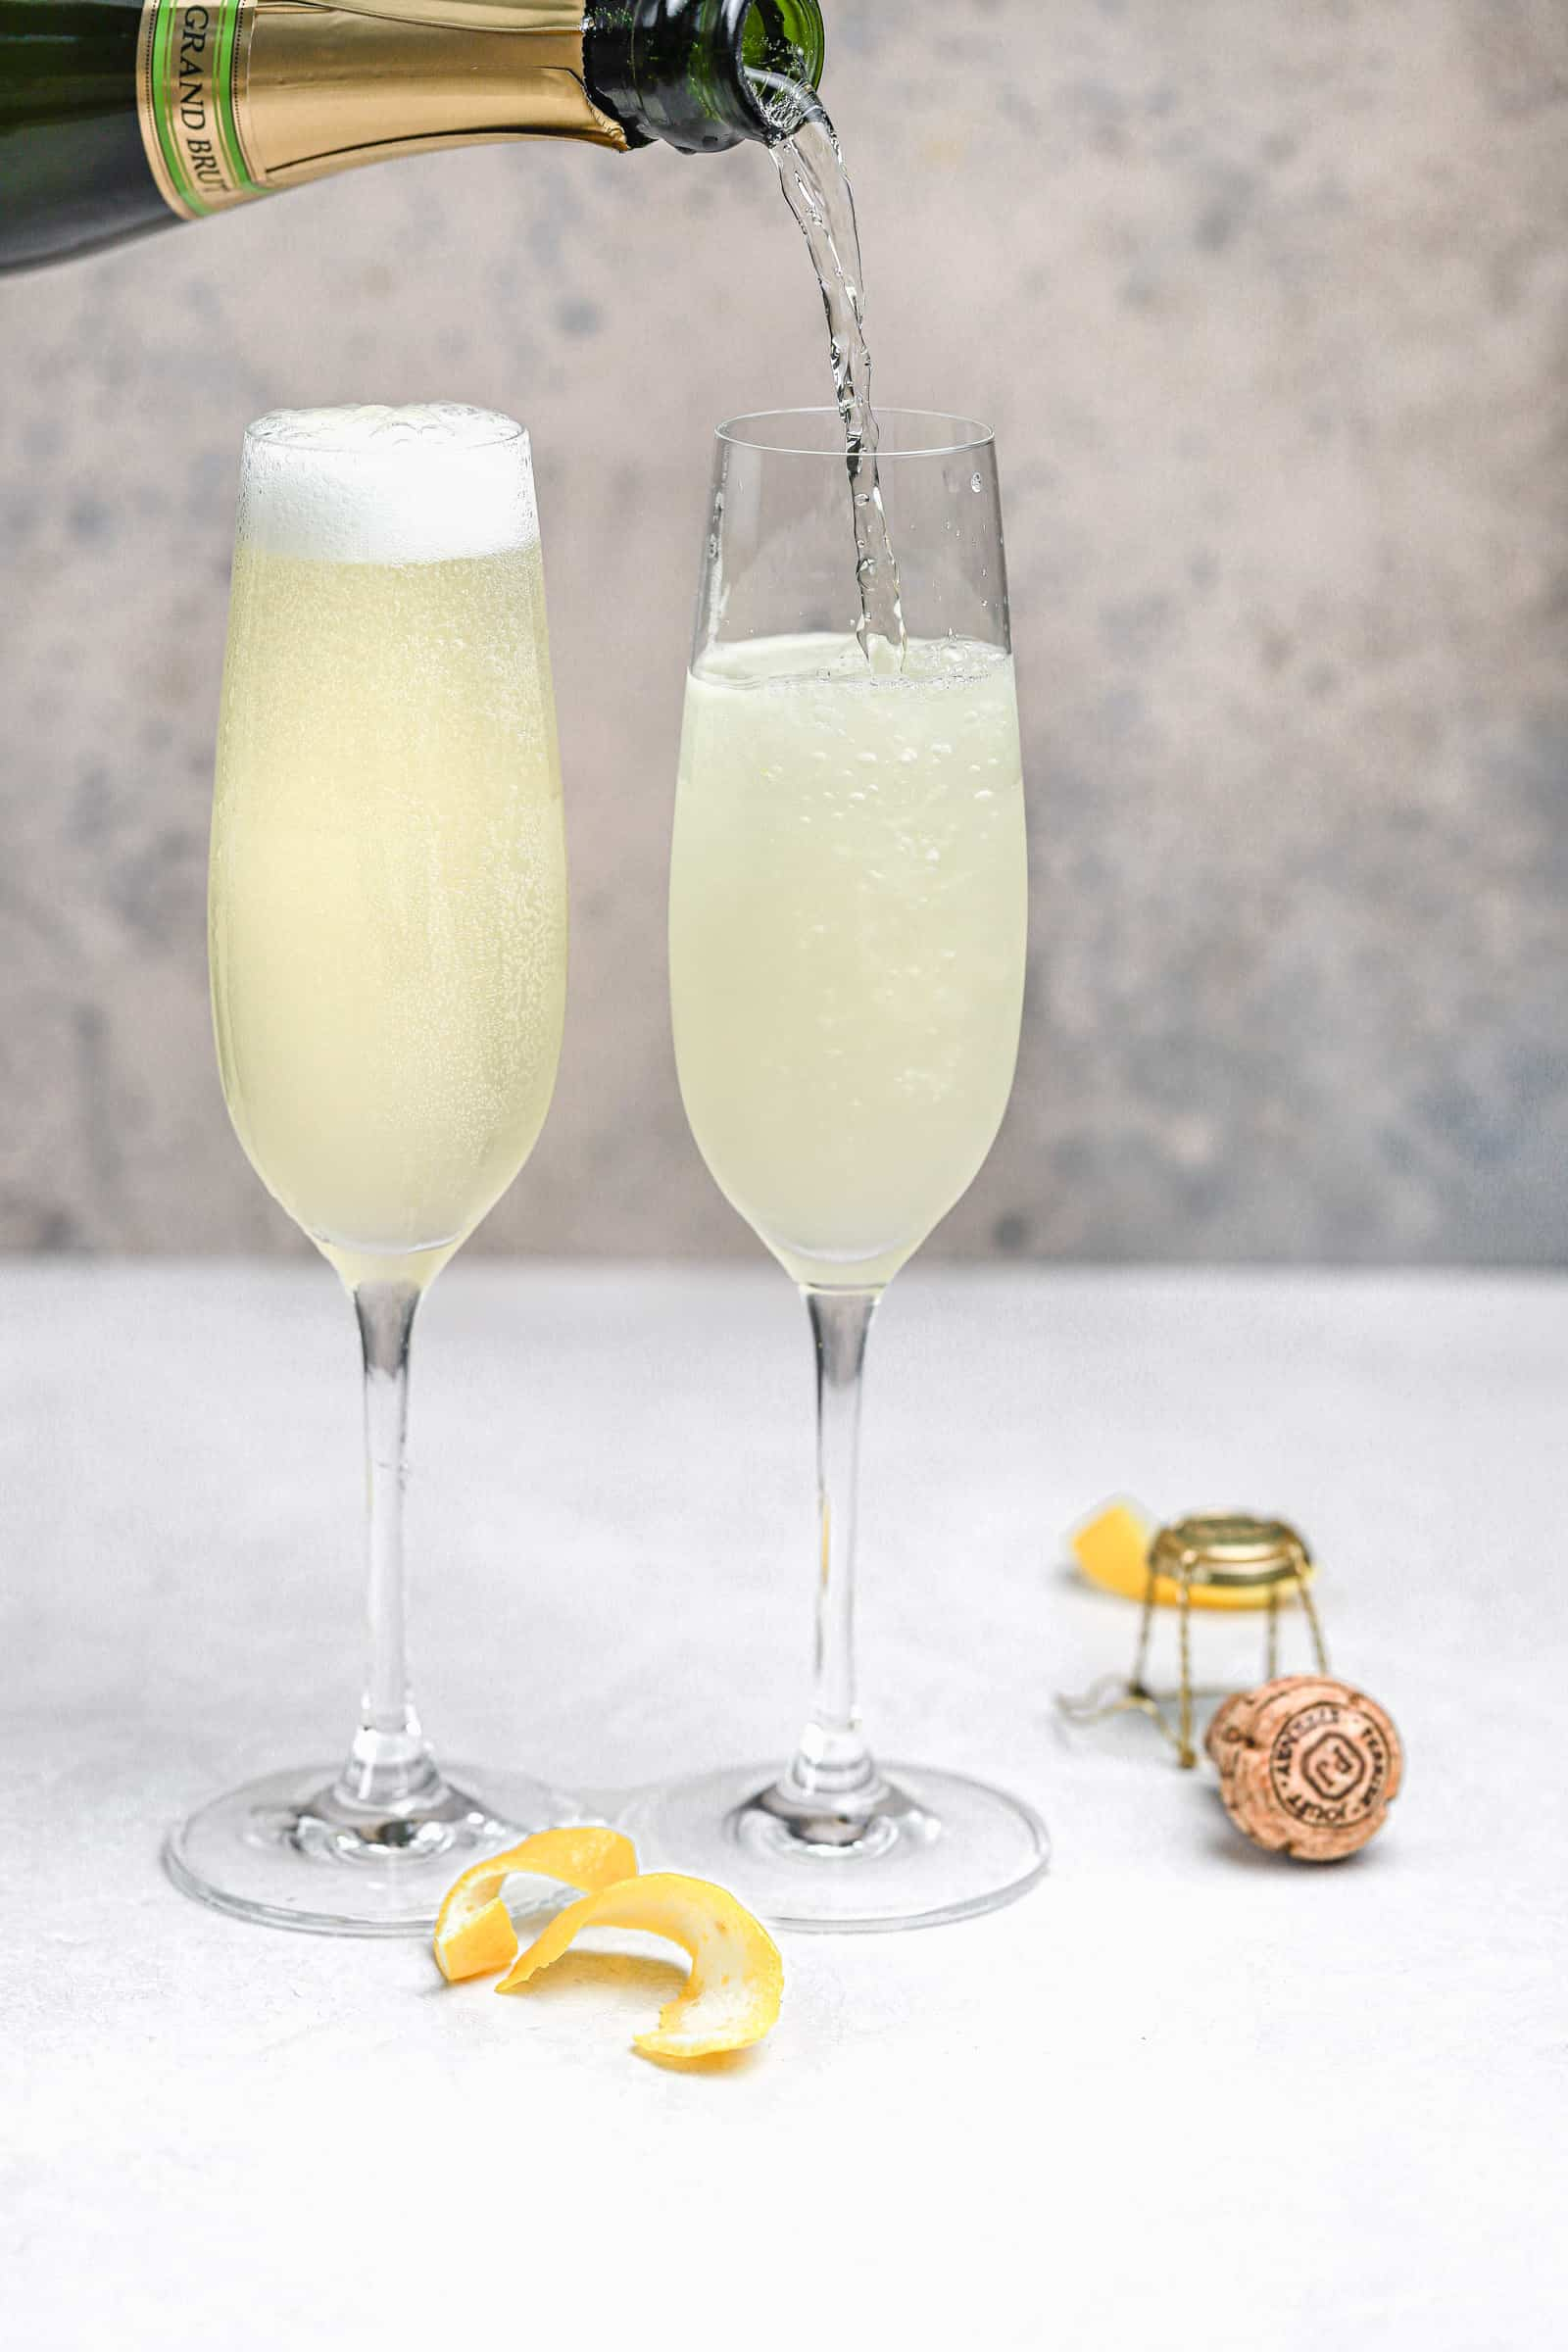 Champagne being poured into flute with gin, lemon juice, and simple syrup